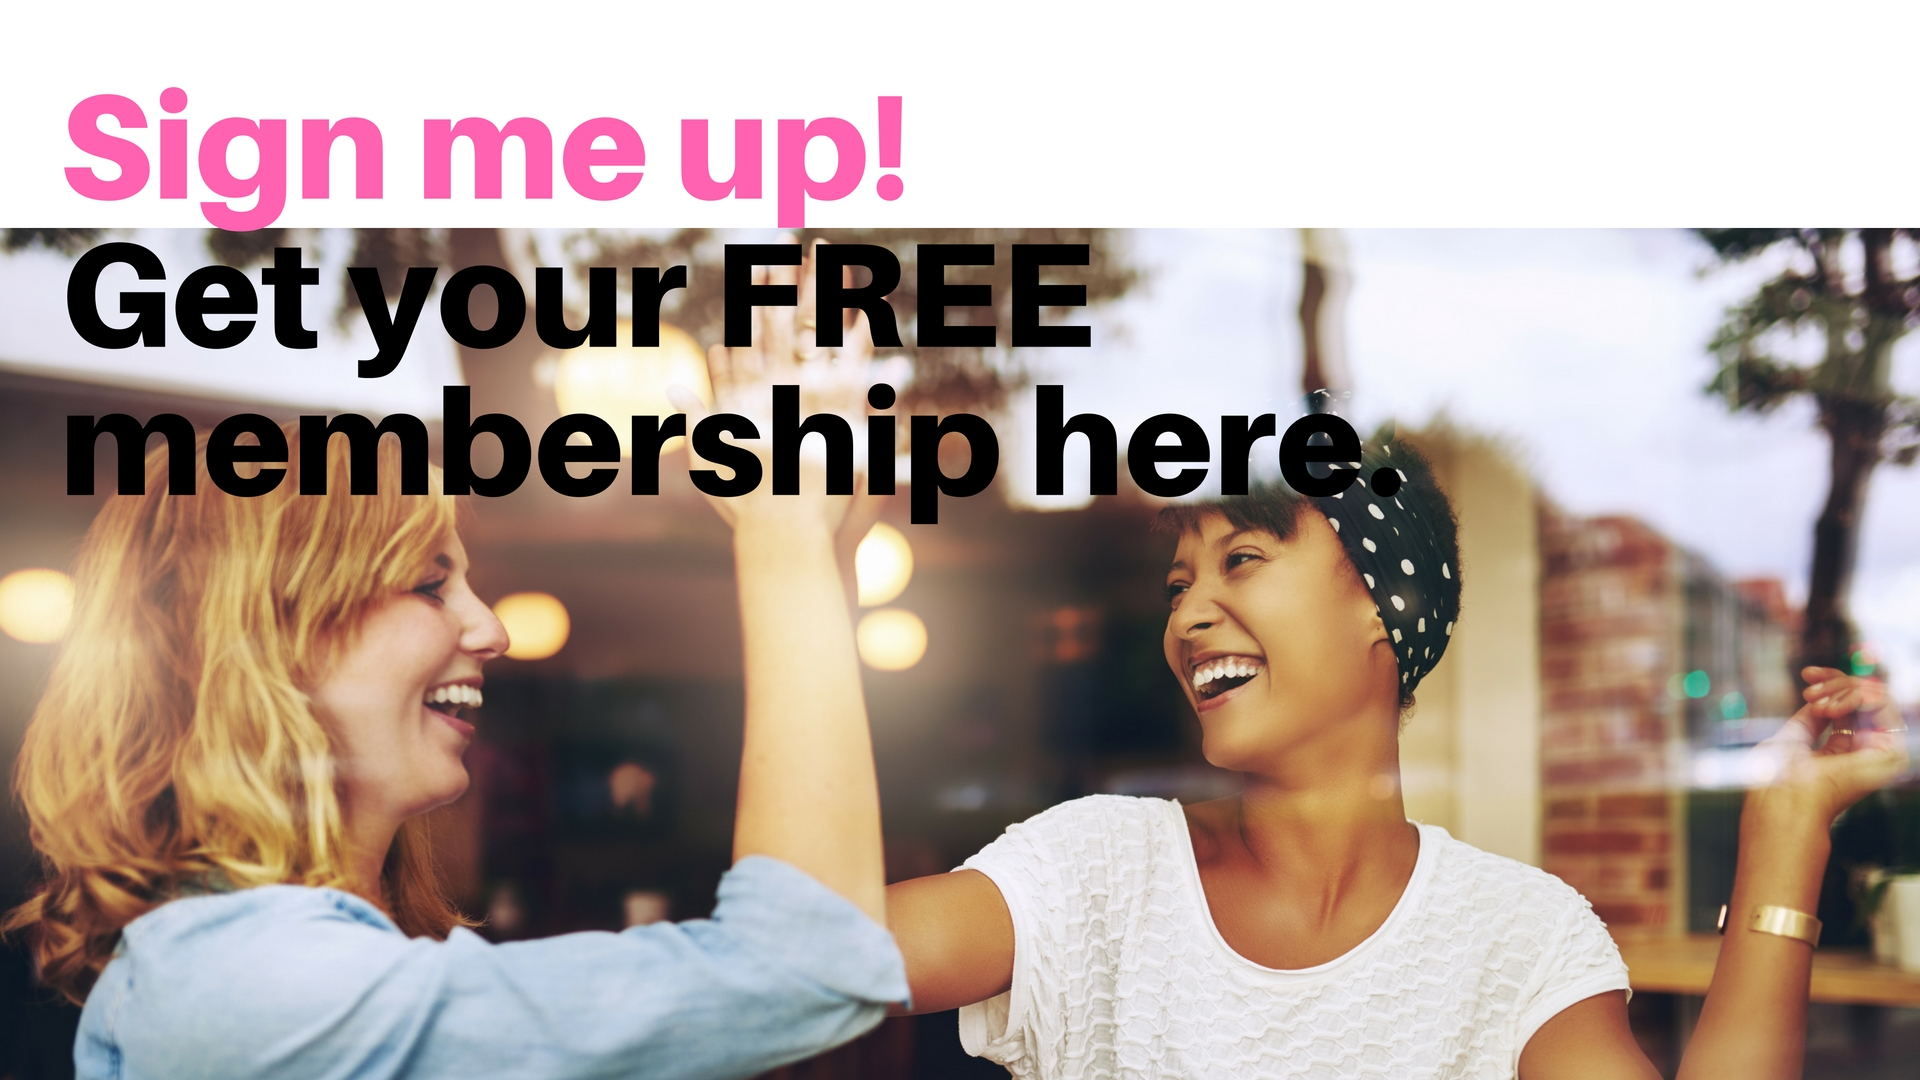 I'm in! Sign up here for your FREE membership